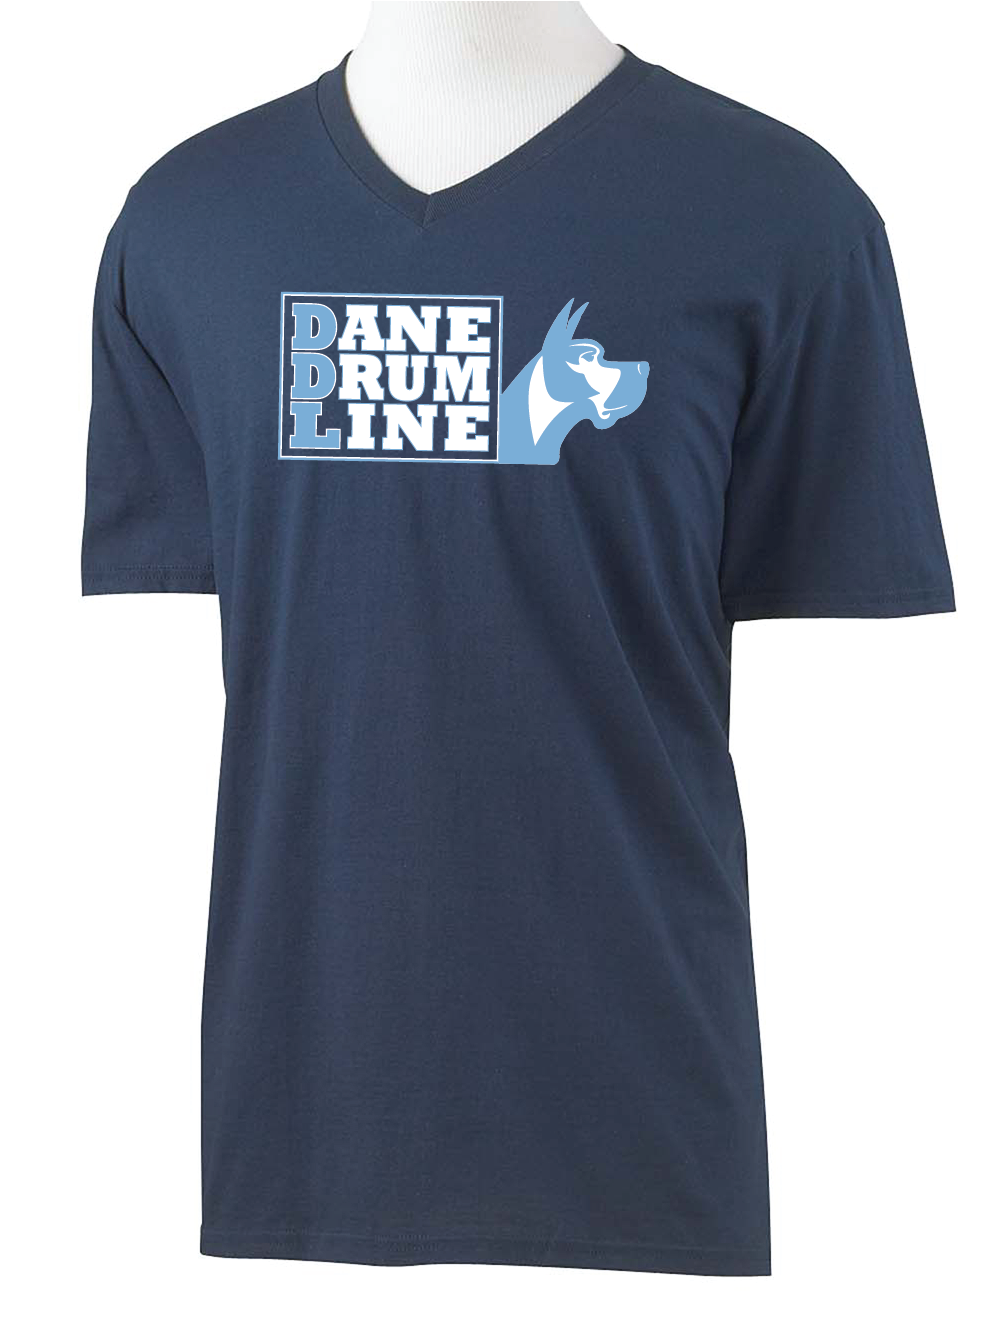 Short Sleeve V-Neck Dane Drum Line